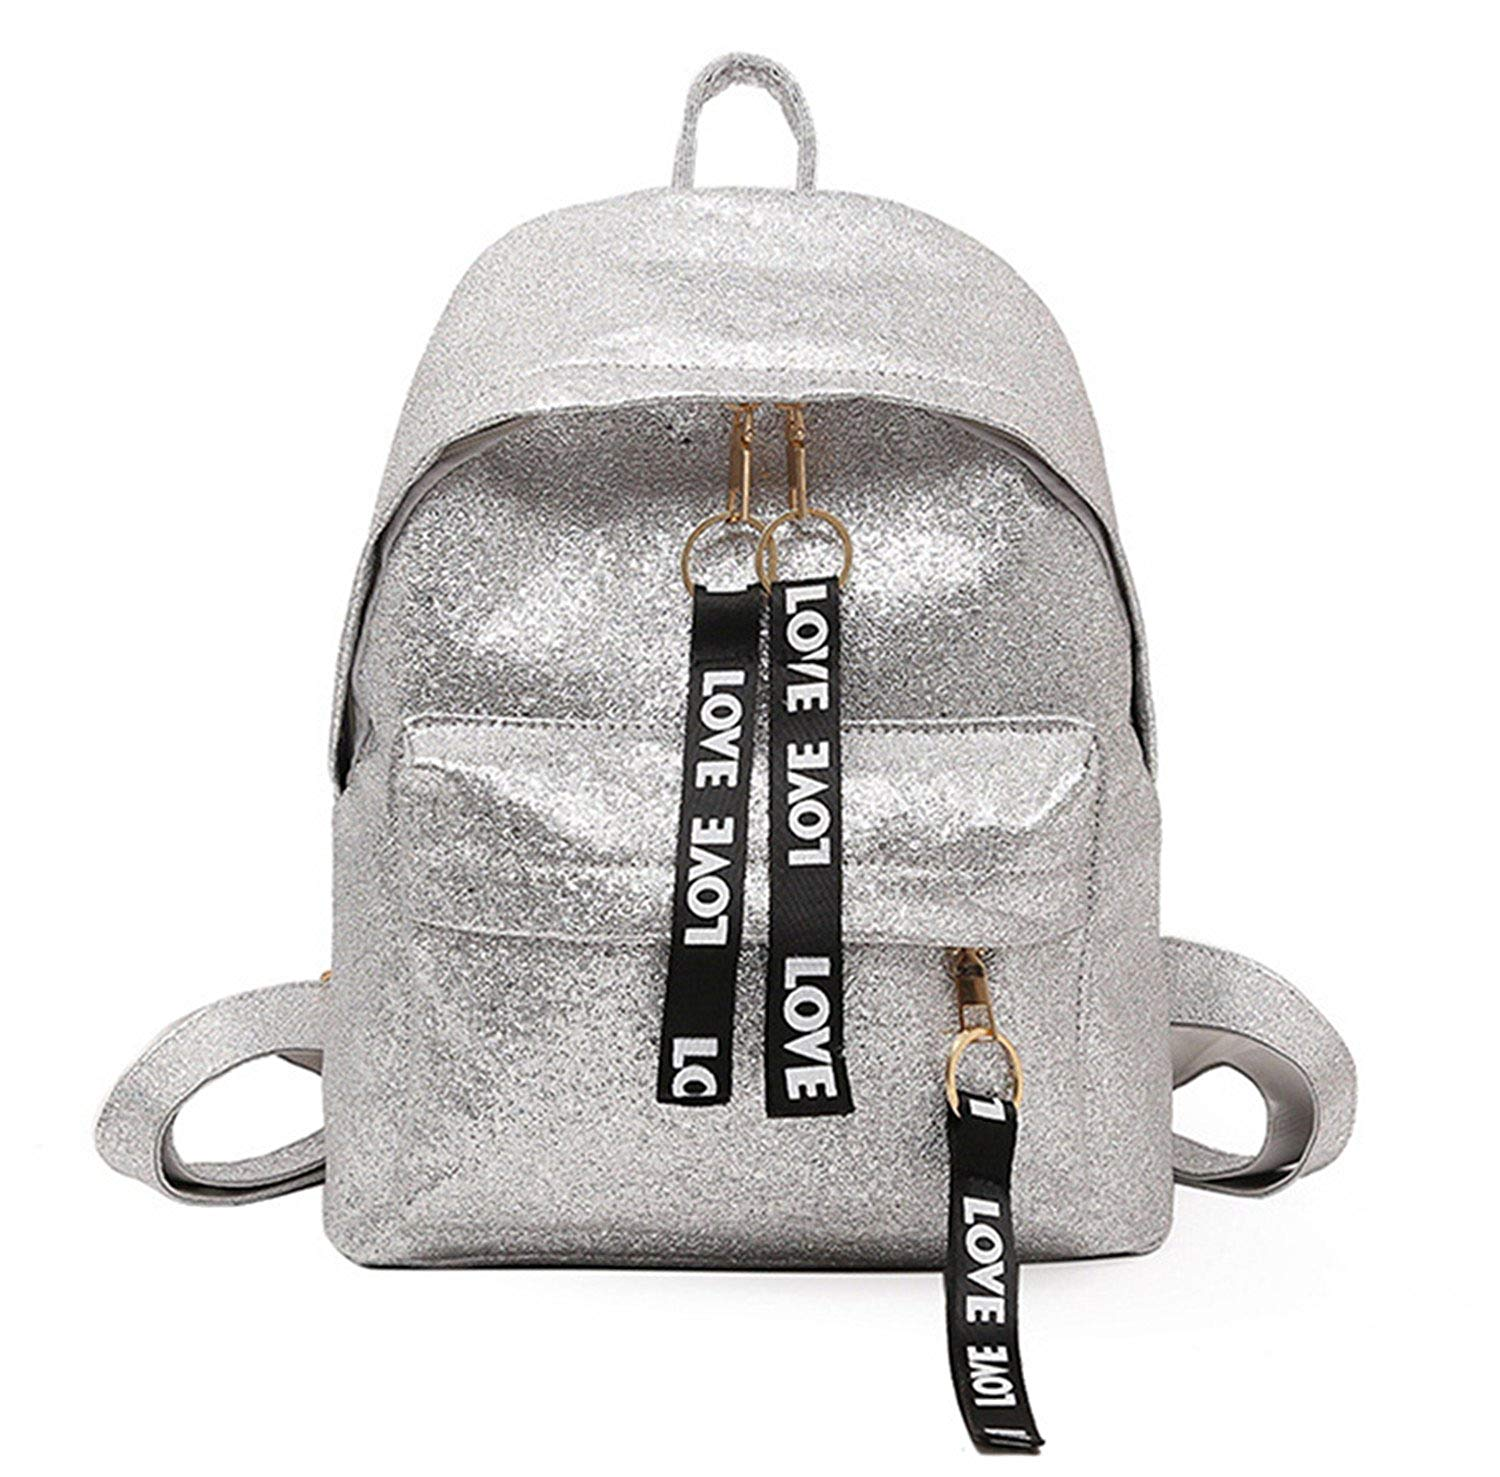 9500130c90 Get Quotations · Gold Shiny Backpack With Letters Ribbons Zipper Women S  Flash Leather Backpack Ladies Small Rucksack